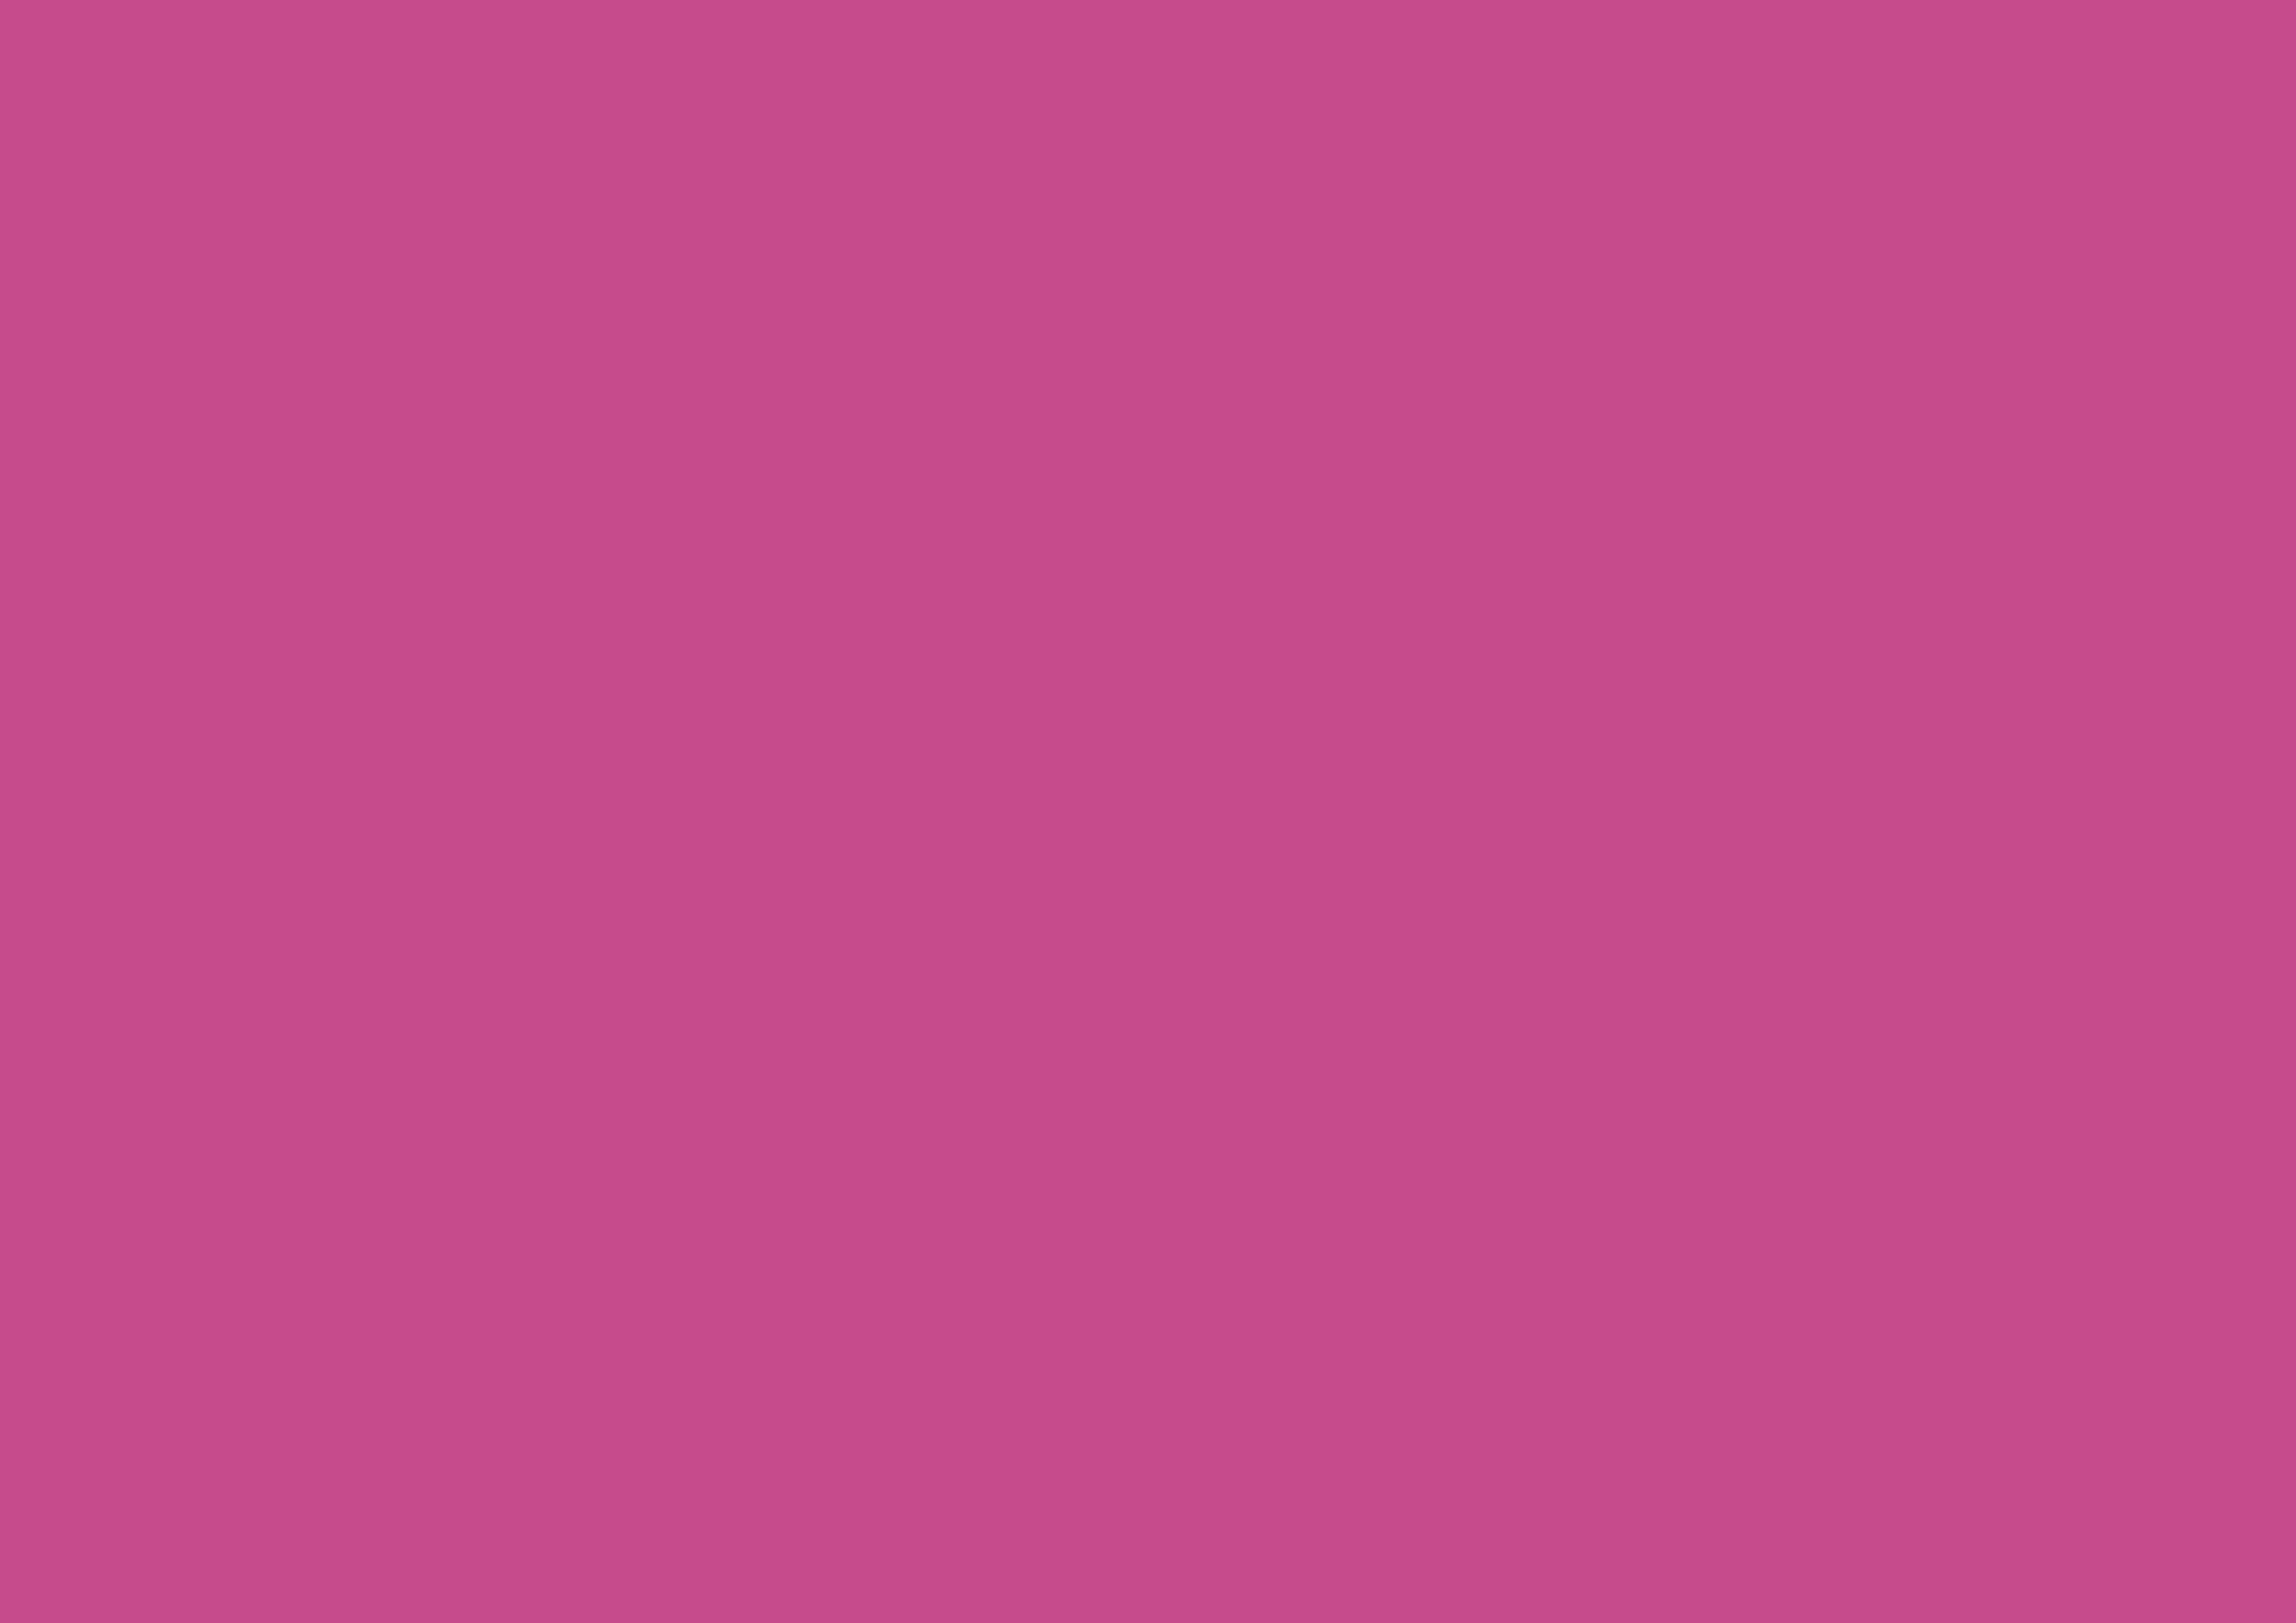 3508x2480 Mulberry Solid Color Background